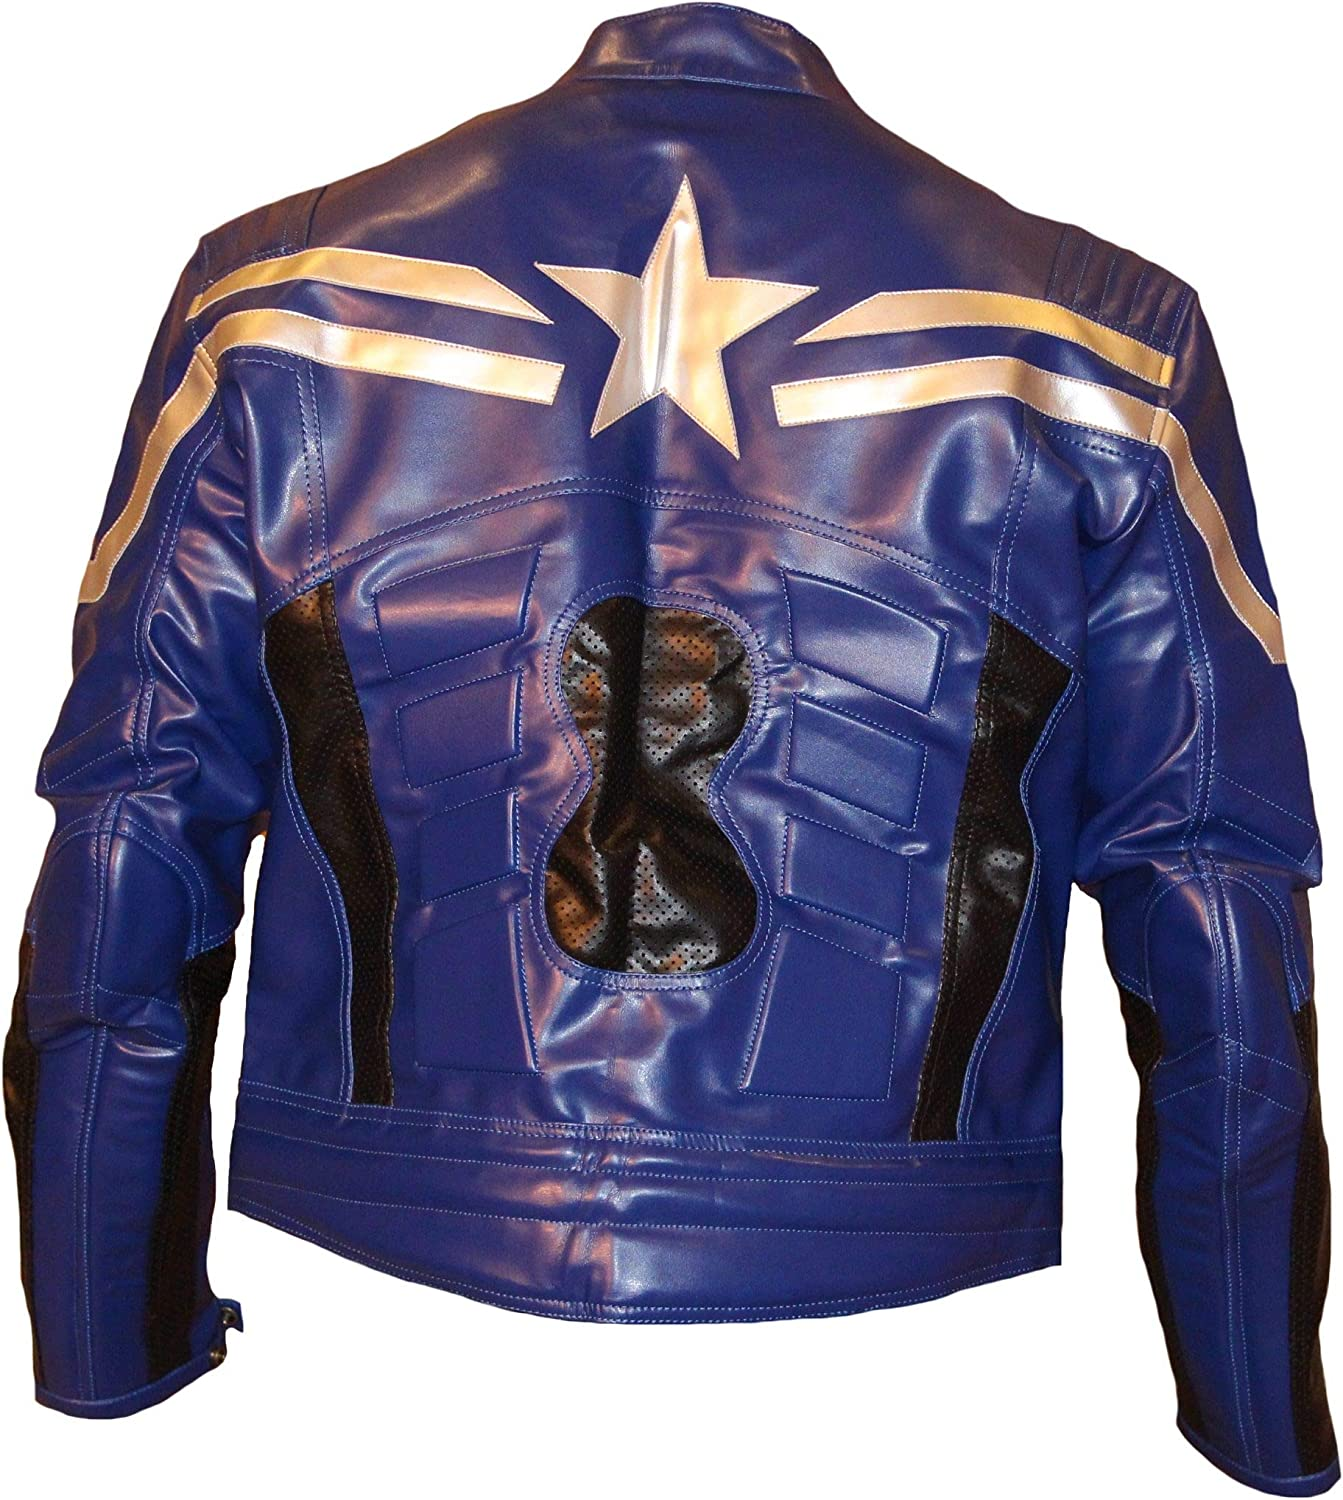 Stormwise Mens Winter Soldier Leather Jacket Blue